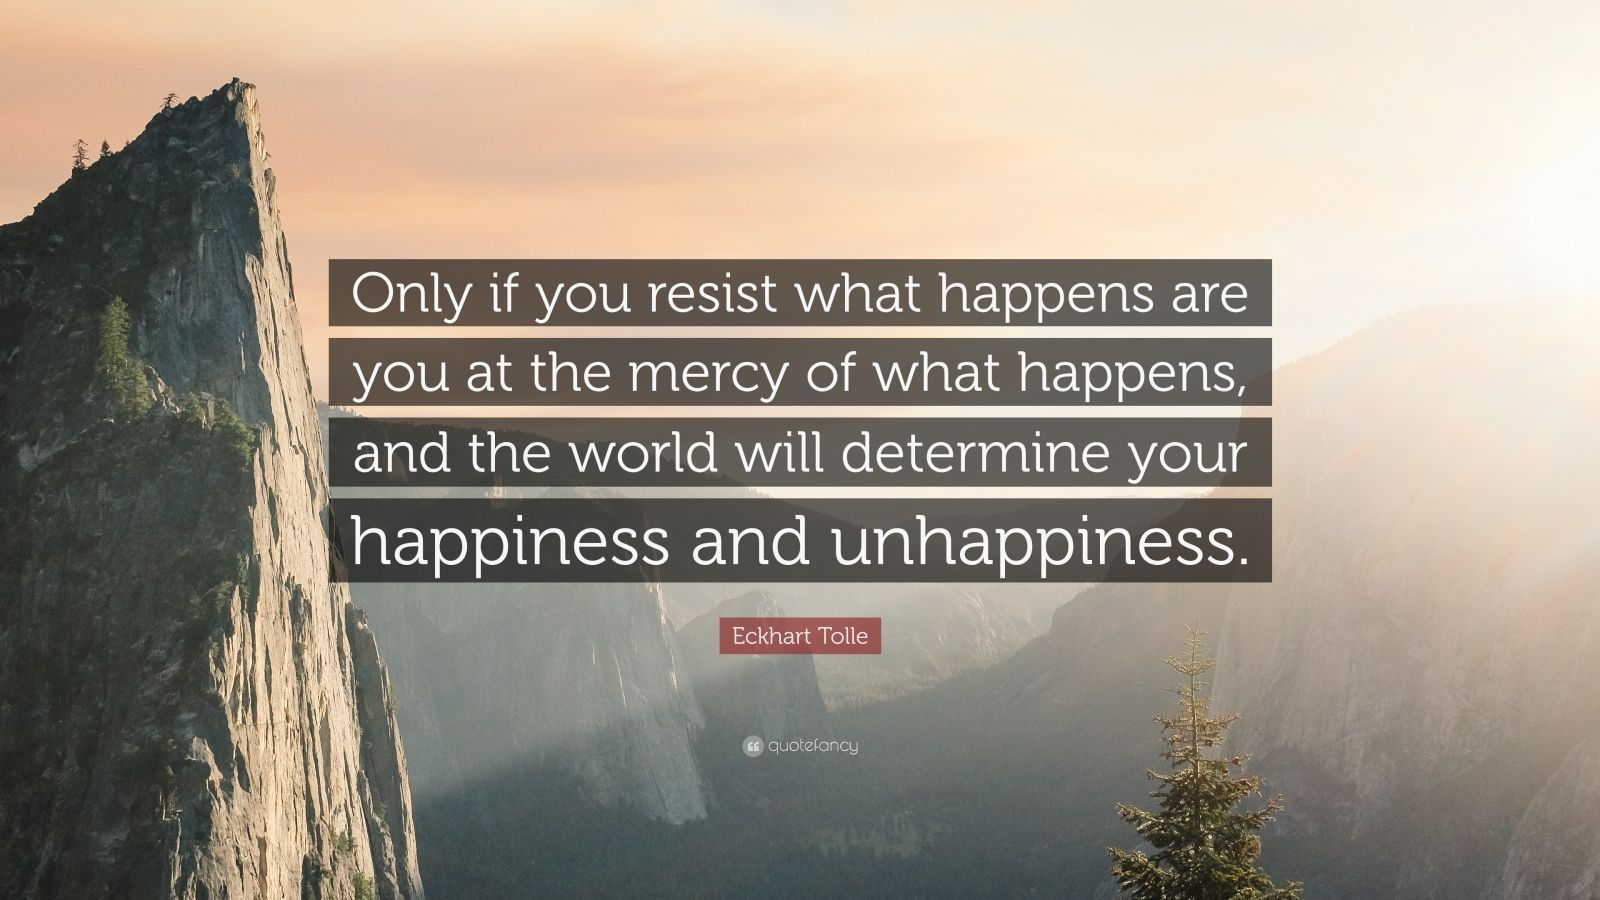 """Eckhart Tolle Quote: """"Only if you resist what happens are you at the mercy of what happens, and the world will determine your happiness and unhappiness."""""""